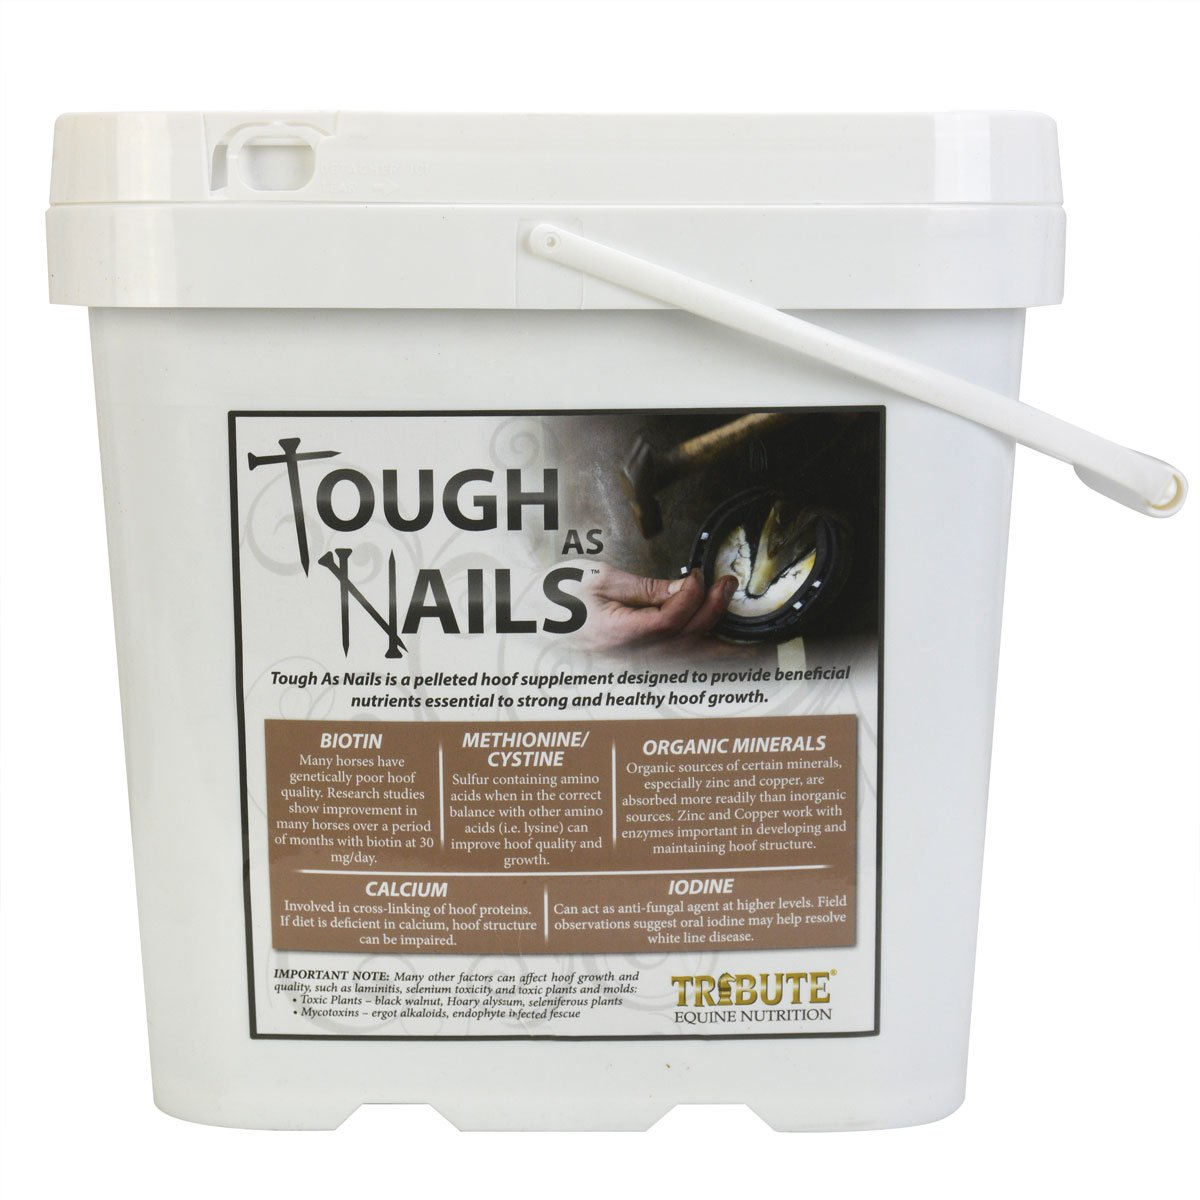 Tribute Equine Nutrition Tough As Nails 11lbs Pelleted Hoof Supplement Bucket (1) by Tribute Equine Nutrition